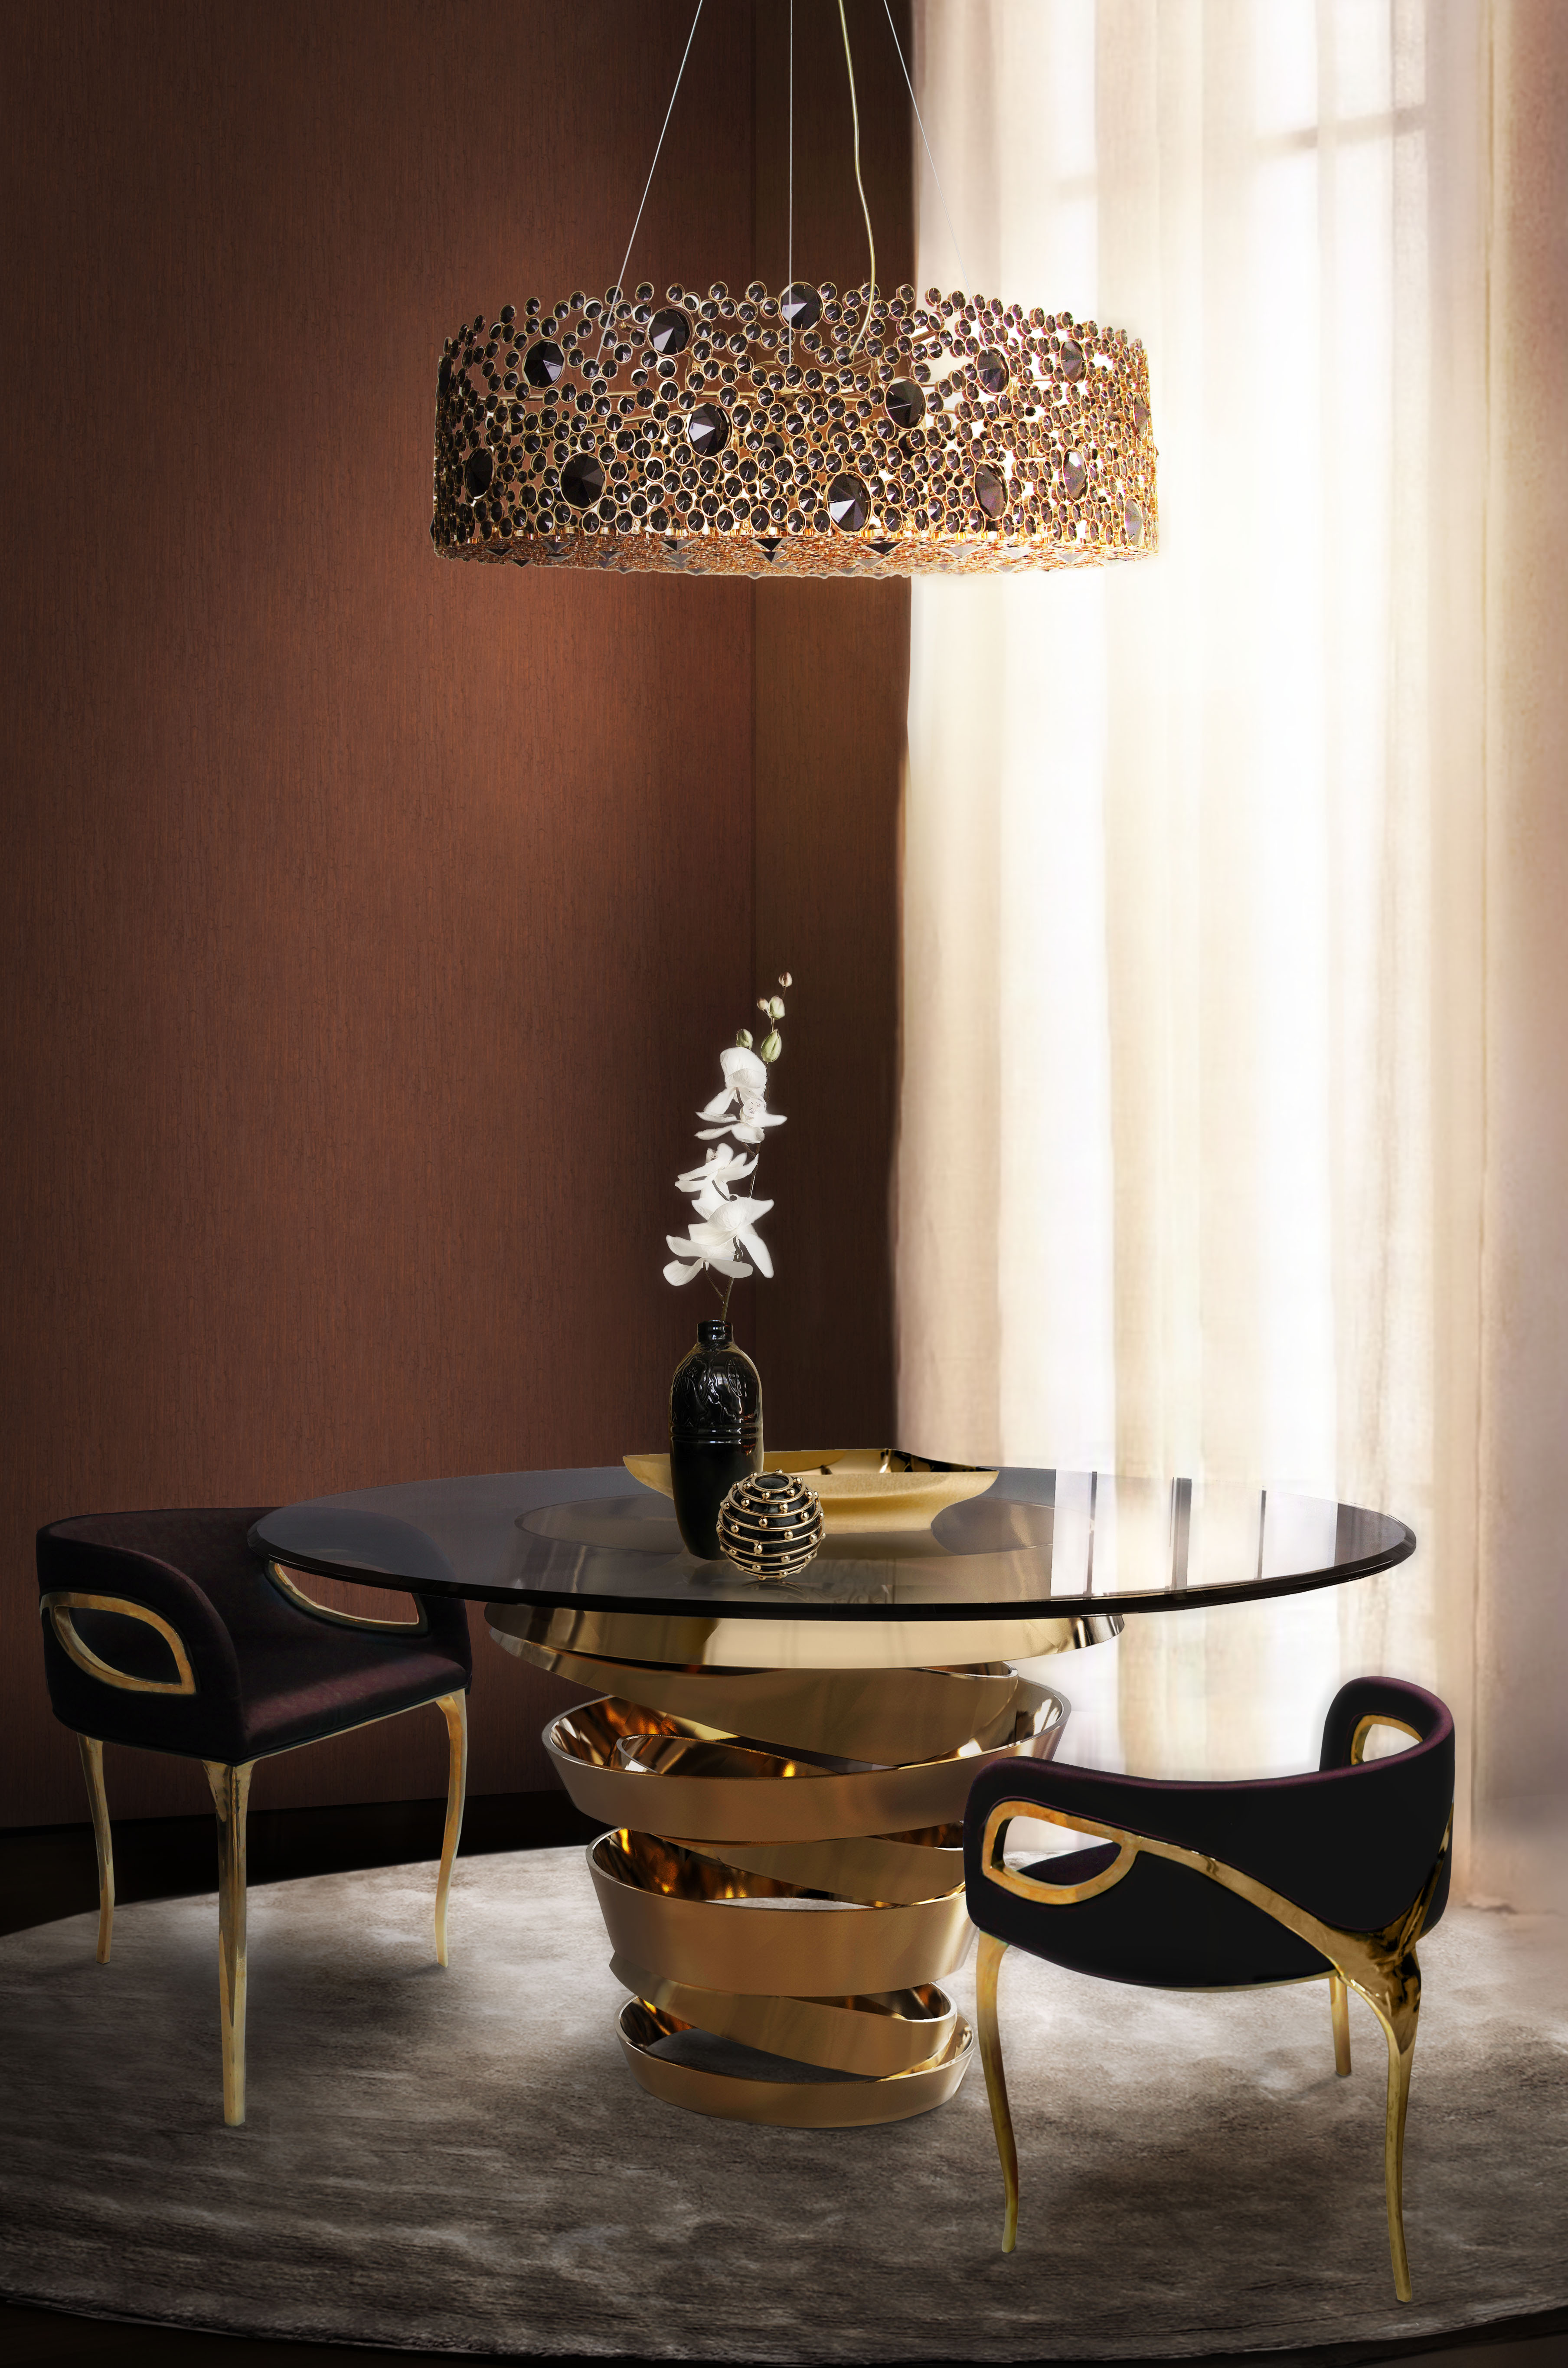 Decorating Ideas For Small Bathrooms In Apartments: The Best Black And Gold Decorating Ideas For Your Dining Room